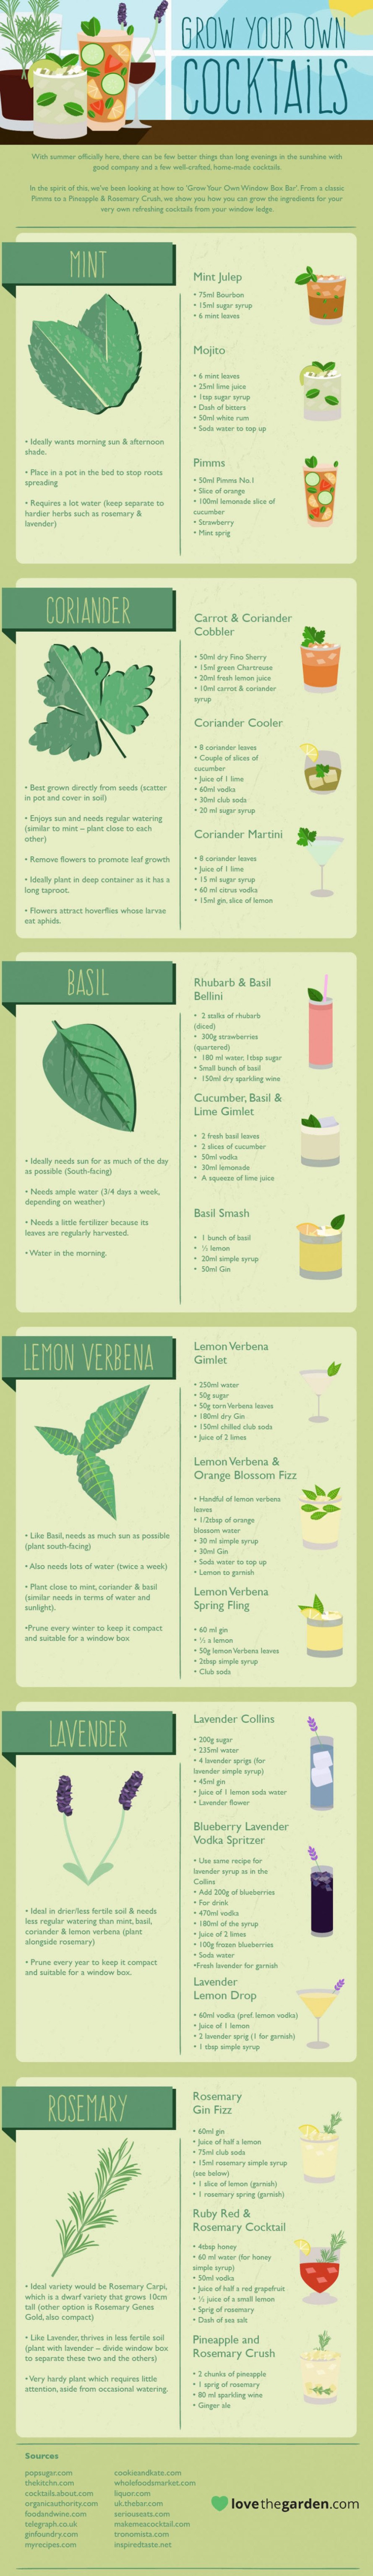 infographic, grow your own cocktail, cocktails, drink recipes, gardening, recipes, garden recipes, herbal cocktails, basil cocktails, lavender cocktails, cocktail recipes,